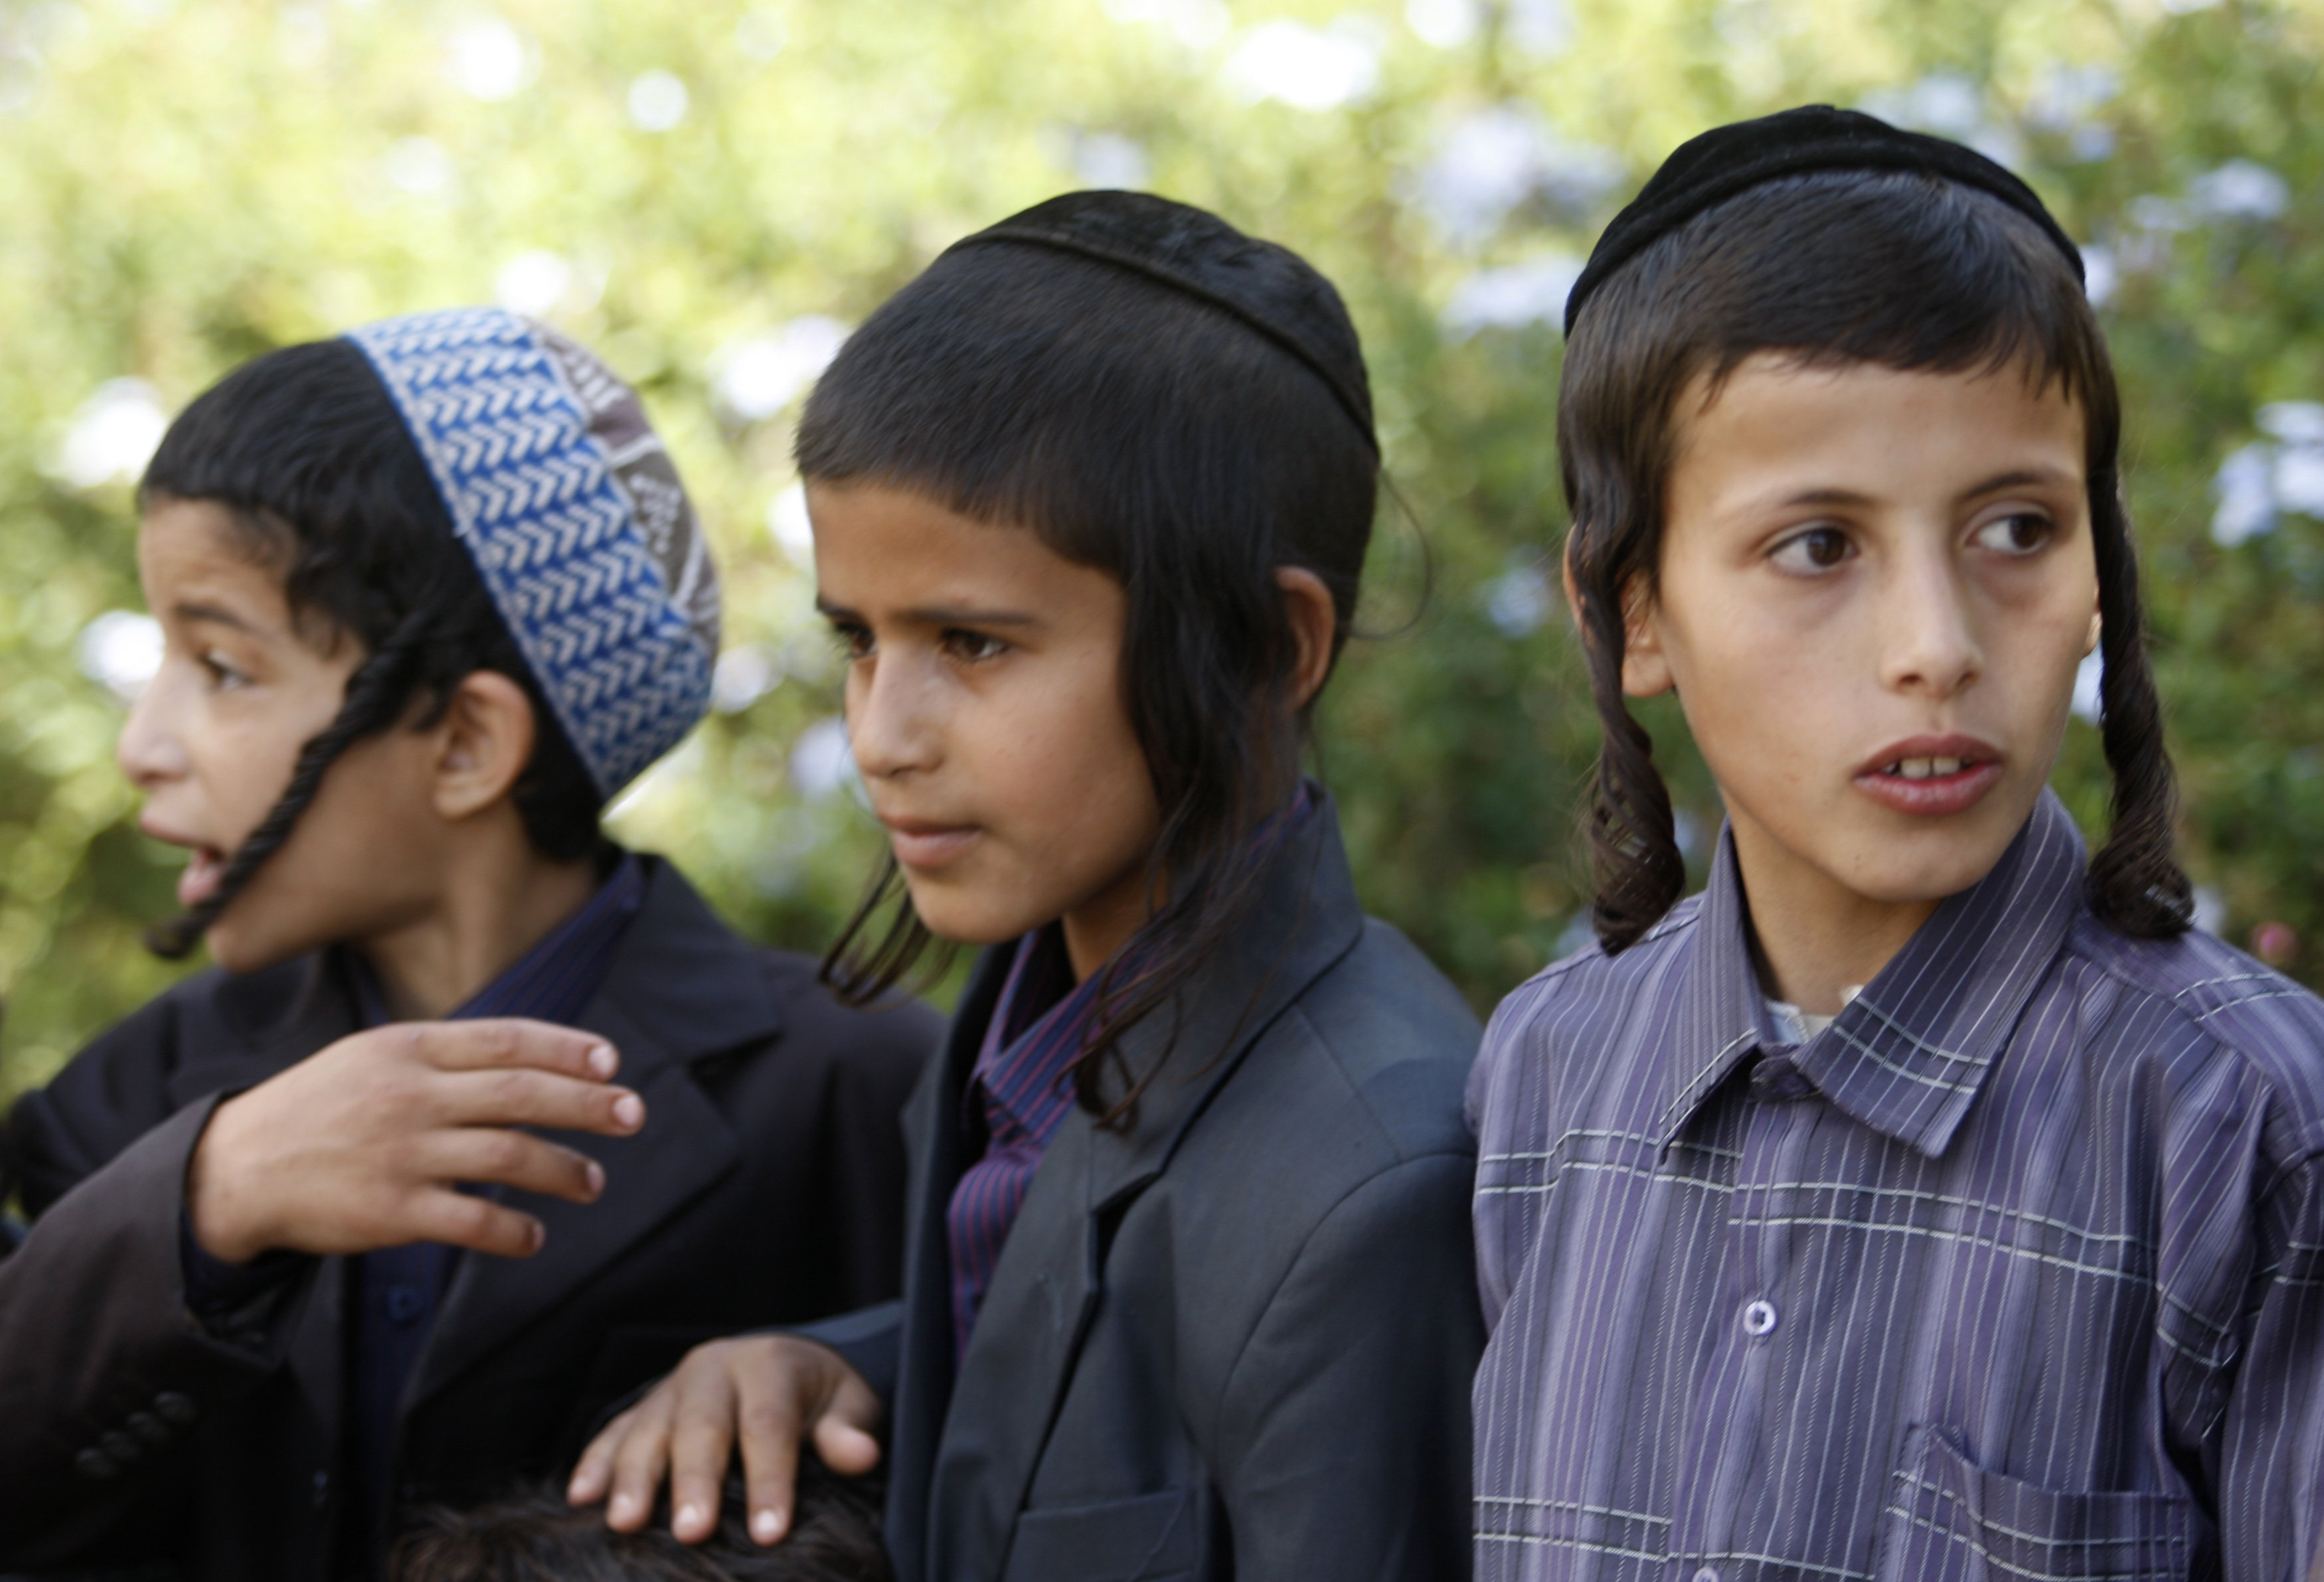 "Yemeni Jewish boys are seen at their housing compound during the Jewish Passover holiday in Sanaa in this April 9, 2009 file photo. A few worried families are all that remain of Yemen's ancient Jewish community, and they too may soon flee after a Shi'ite Muslim militia seized power in the strife-torn country this month. Harassment by the Houthi movement - whose motto is ""Death to America, death to Israel, curse the Jews, victory to Islam"" - caused Jews in recent years to largely quit the northern highlands they shared with Yemen's Shi'ites for millennia. But political feuds in which the Jews played no part escalated last September into an armed Houthi plunge into the capital Sanaa, the community's main refuge from which some now contemplate a final exodus.  REUTERS/Khaled Abdullah/Files (YEMEN - Tags: RELIGION POLITICS CIVIL UNREST)"